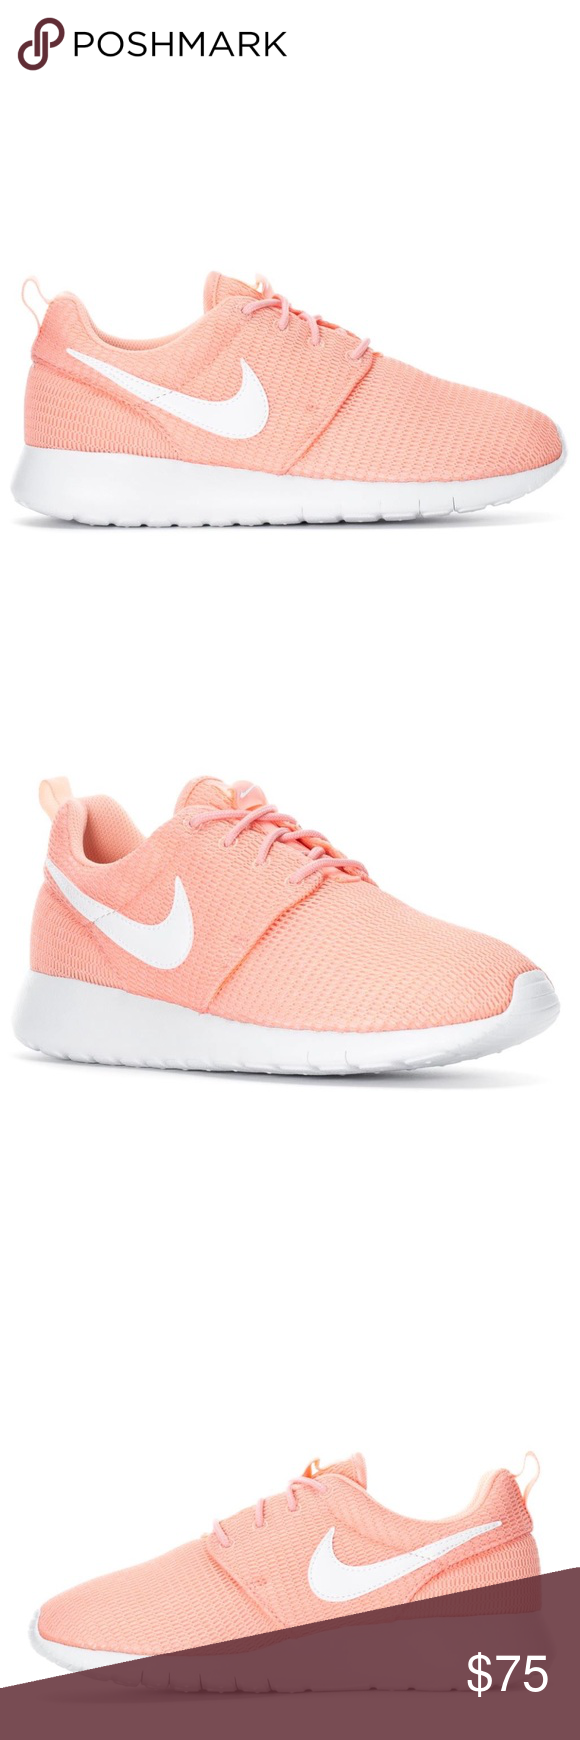 ed709356bc86 NIKE ROSHE ONE WOMENS RUNNING SHOES NEW Brand new without box. Size 7 youth  which